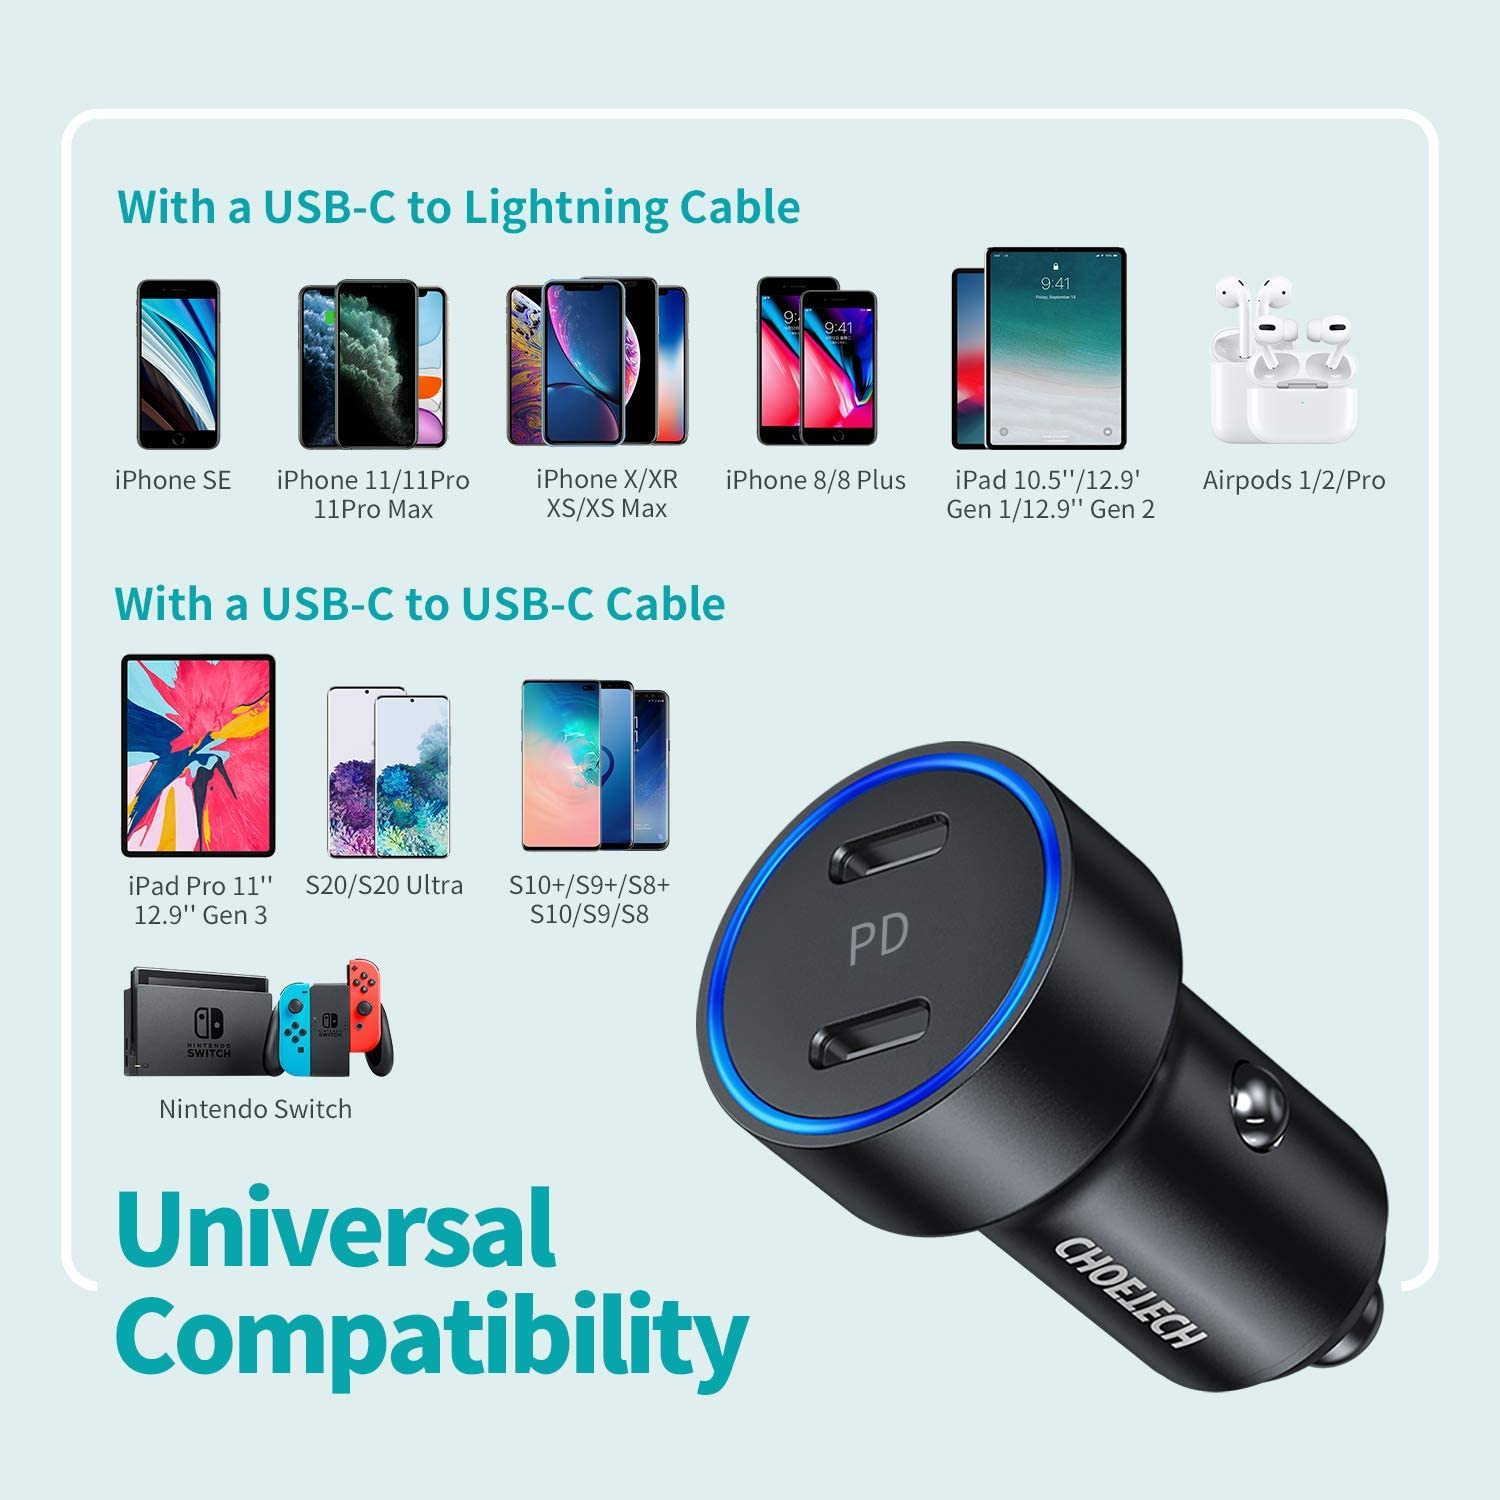 iPad Pro USB C Car Charger CHOETECH 36W 2-Port Fast PD 3.0 All Metal Type C Car Charger Adapter with Dual 18W Power Delivery Compatible iPhone 12//11//11 Pro//11 Pro Max//XS//SE,Galaxy S20//S10,Pixel 3//2